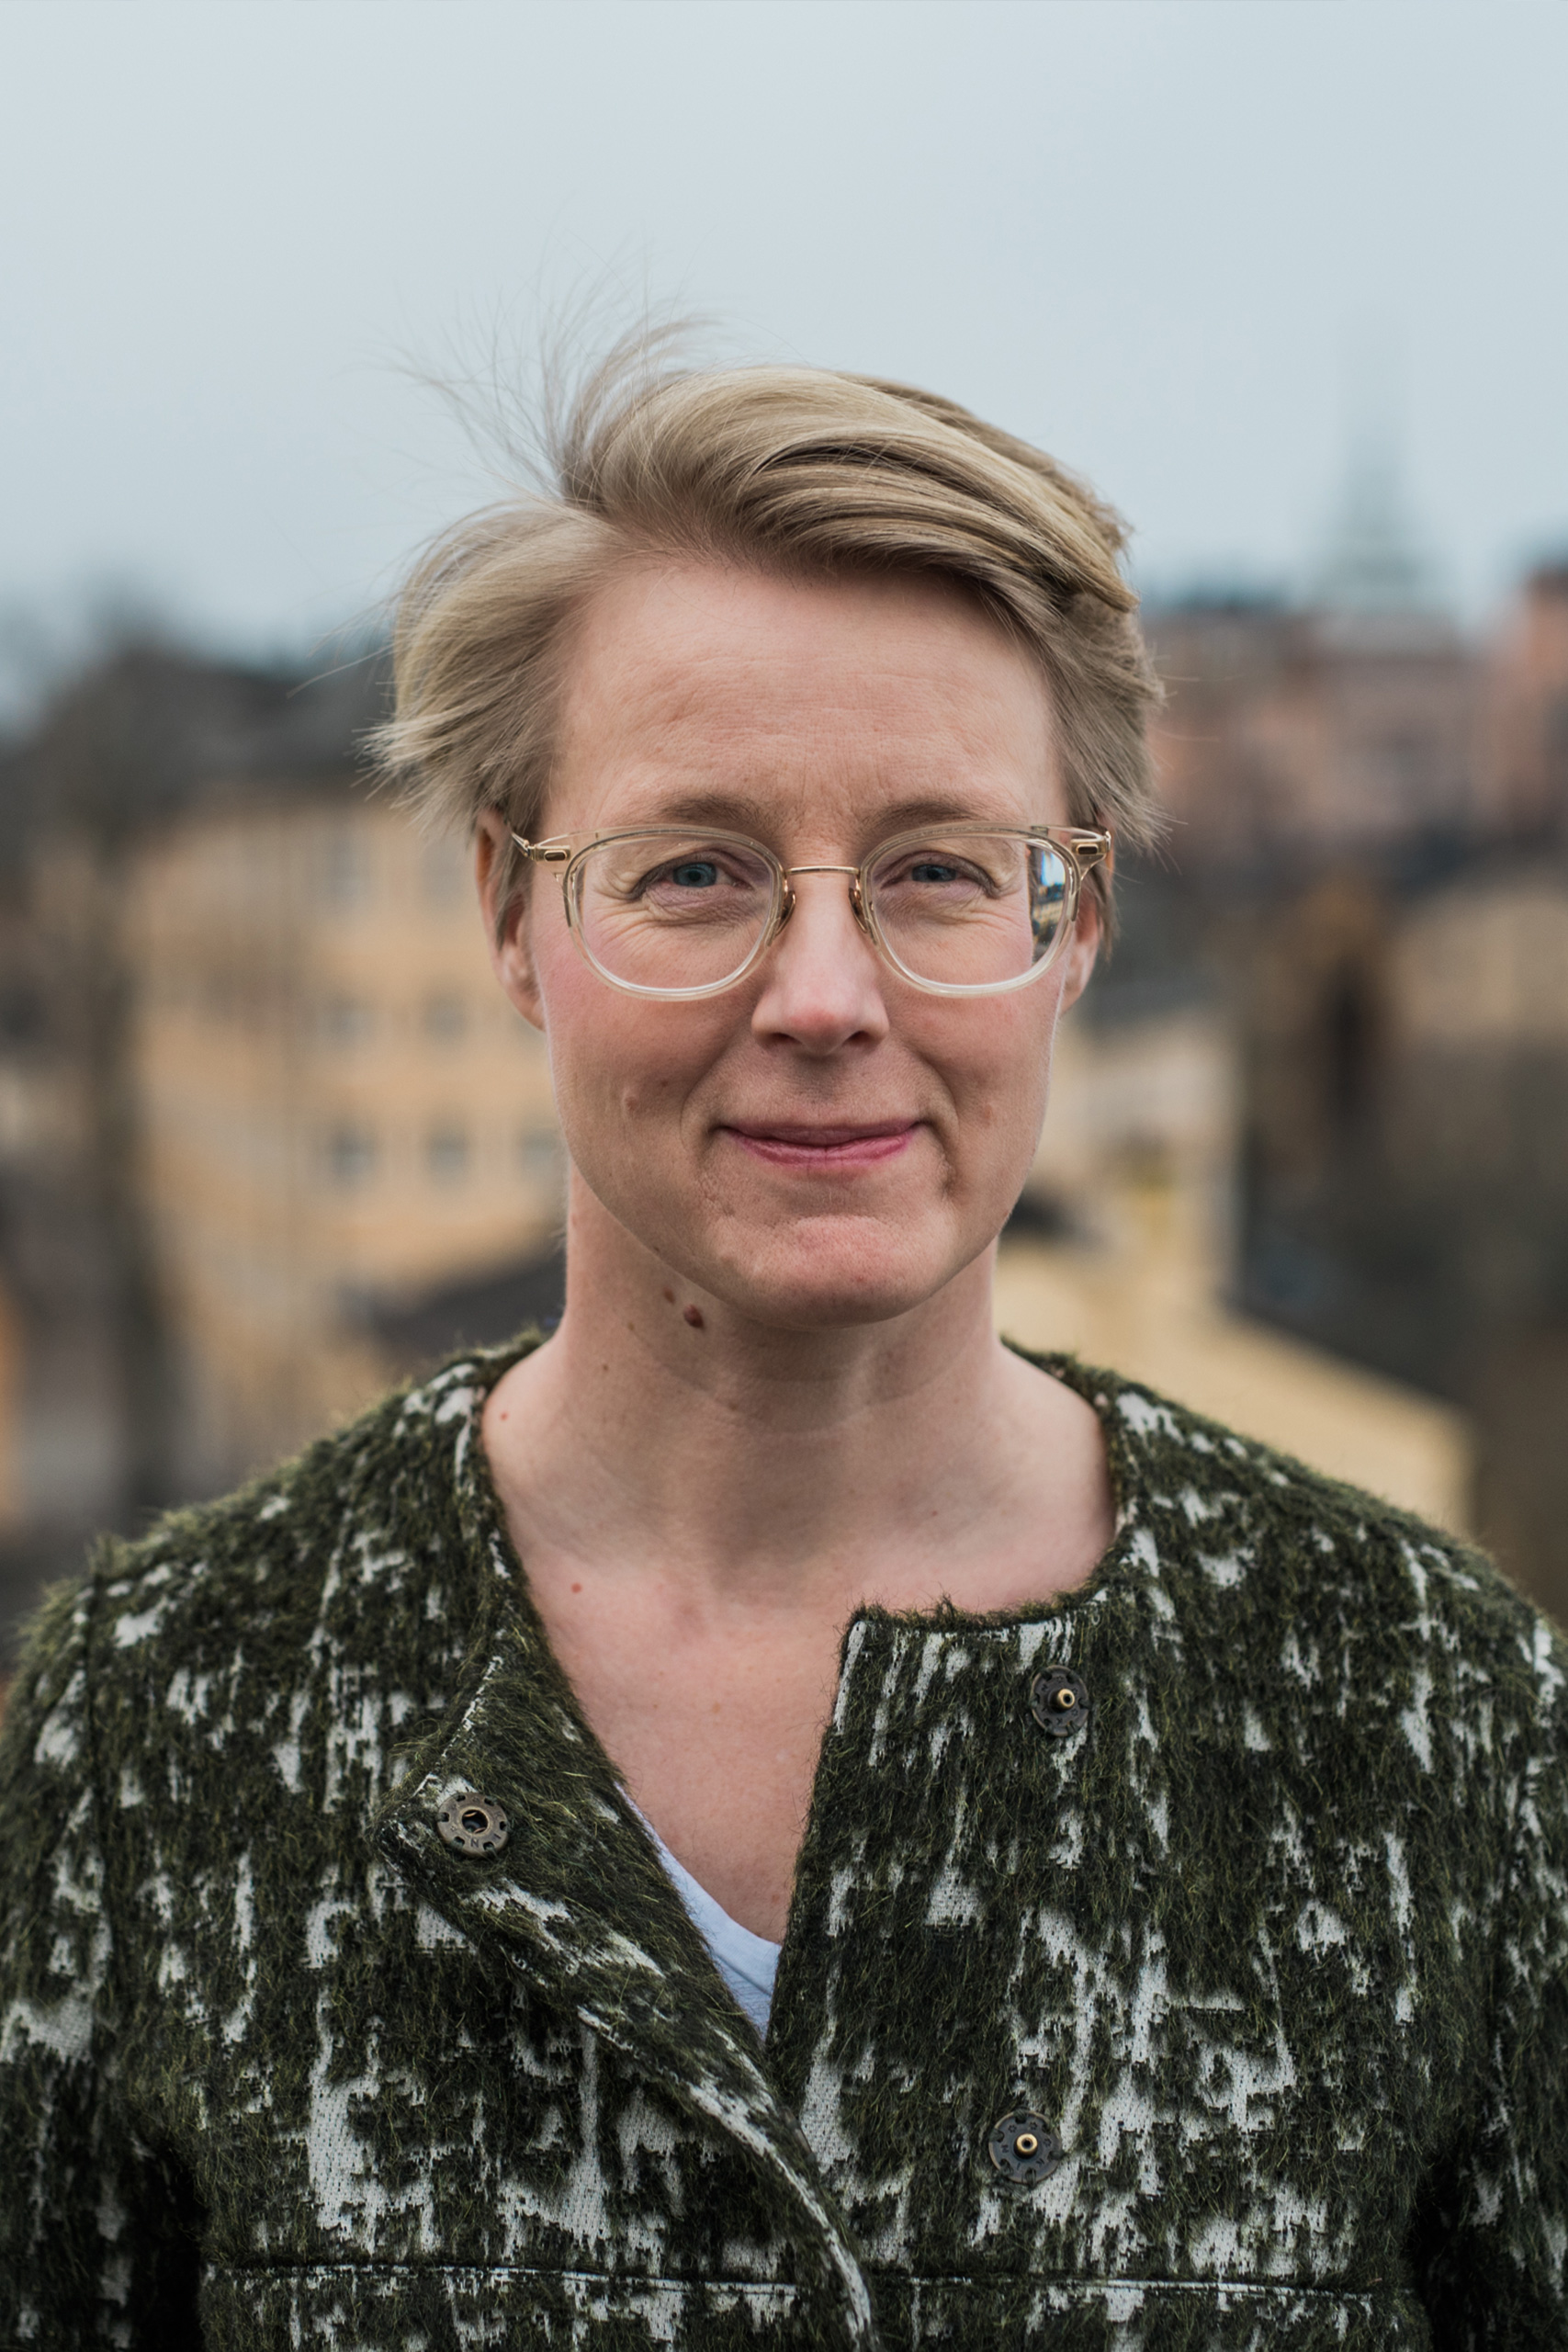 Louise Andersson